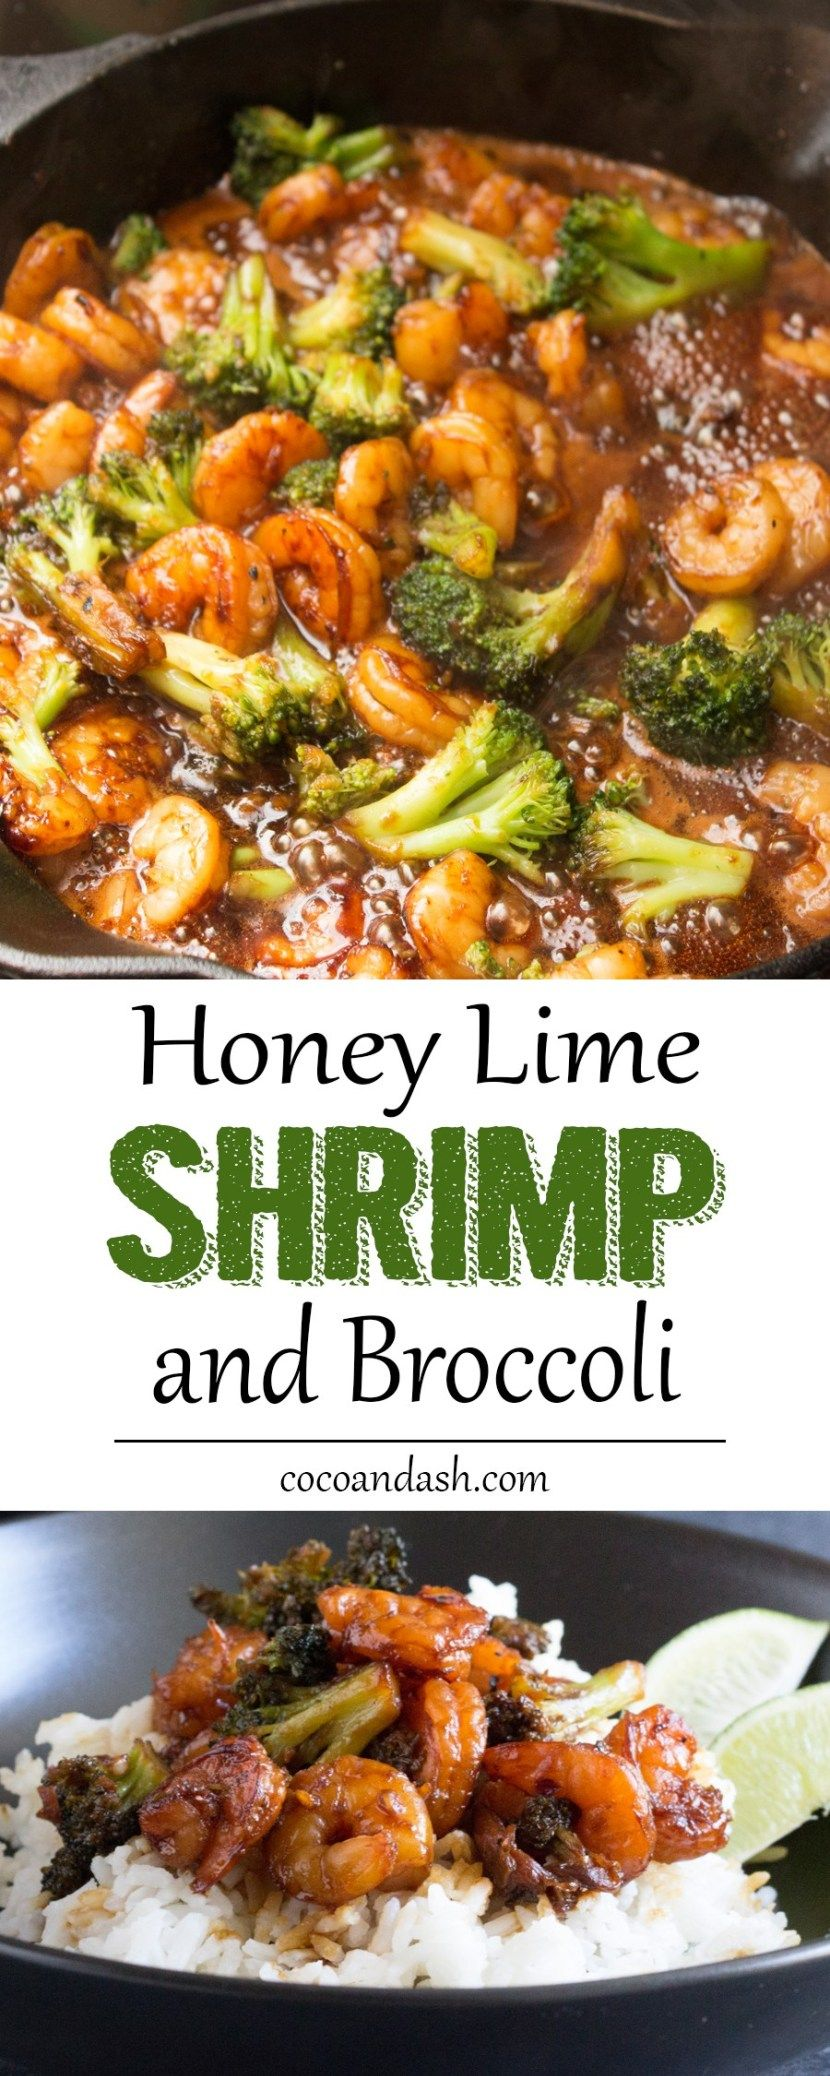 Honey Lime Shrimp and Broccoli - Coco and Ash